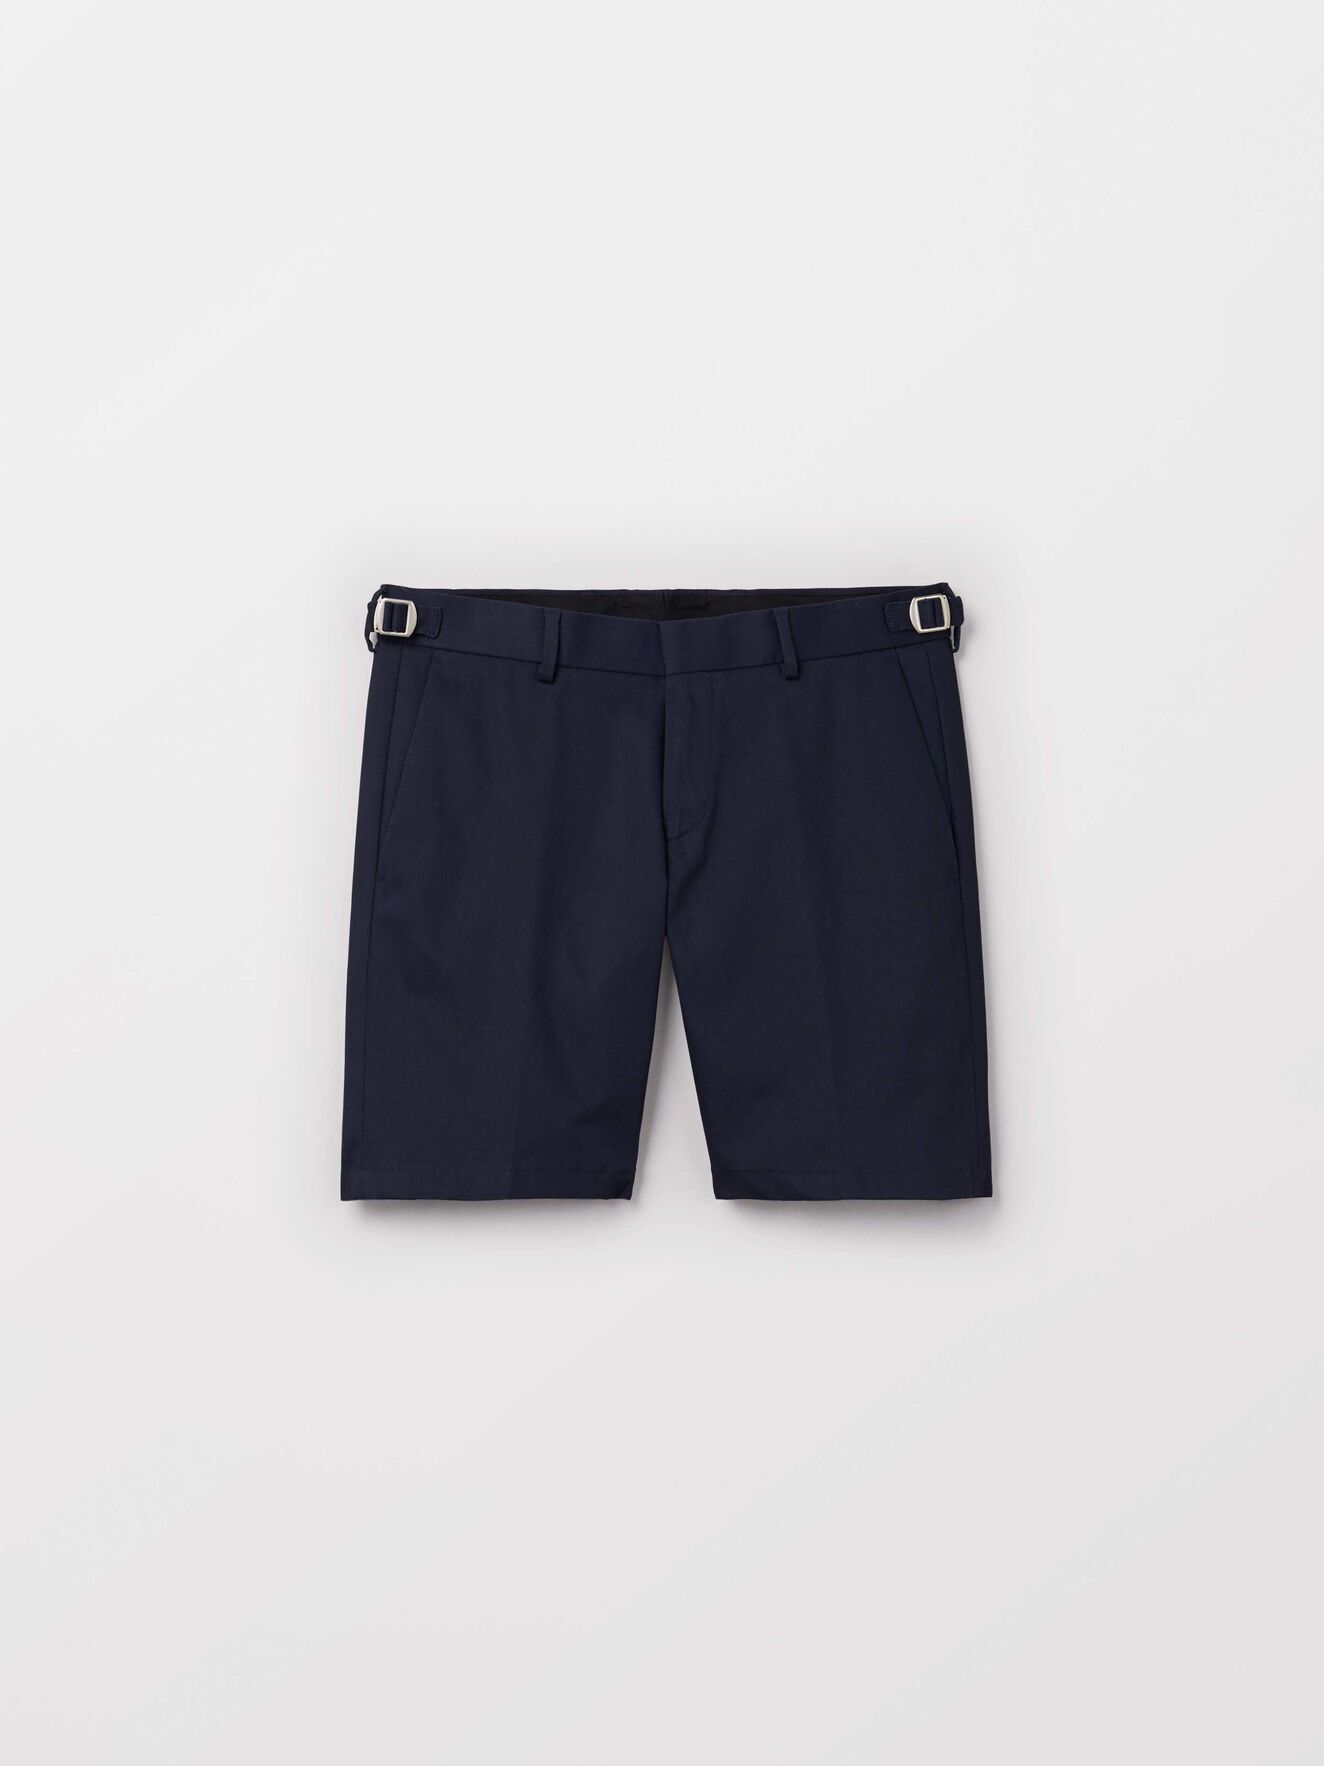 Travon Shorts in Light Ink from Tiger of Sweden